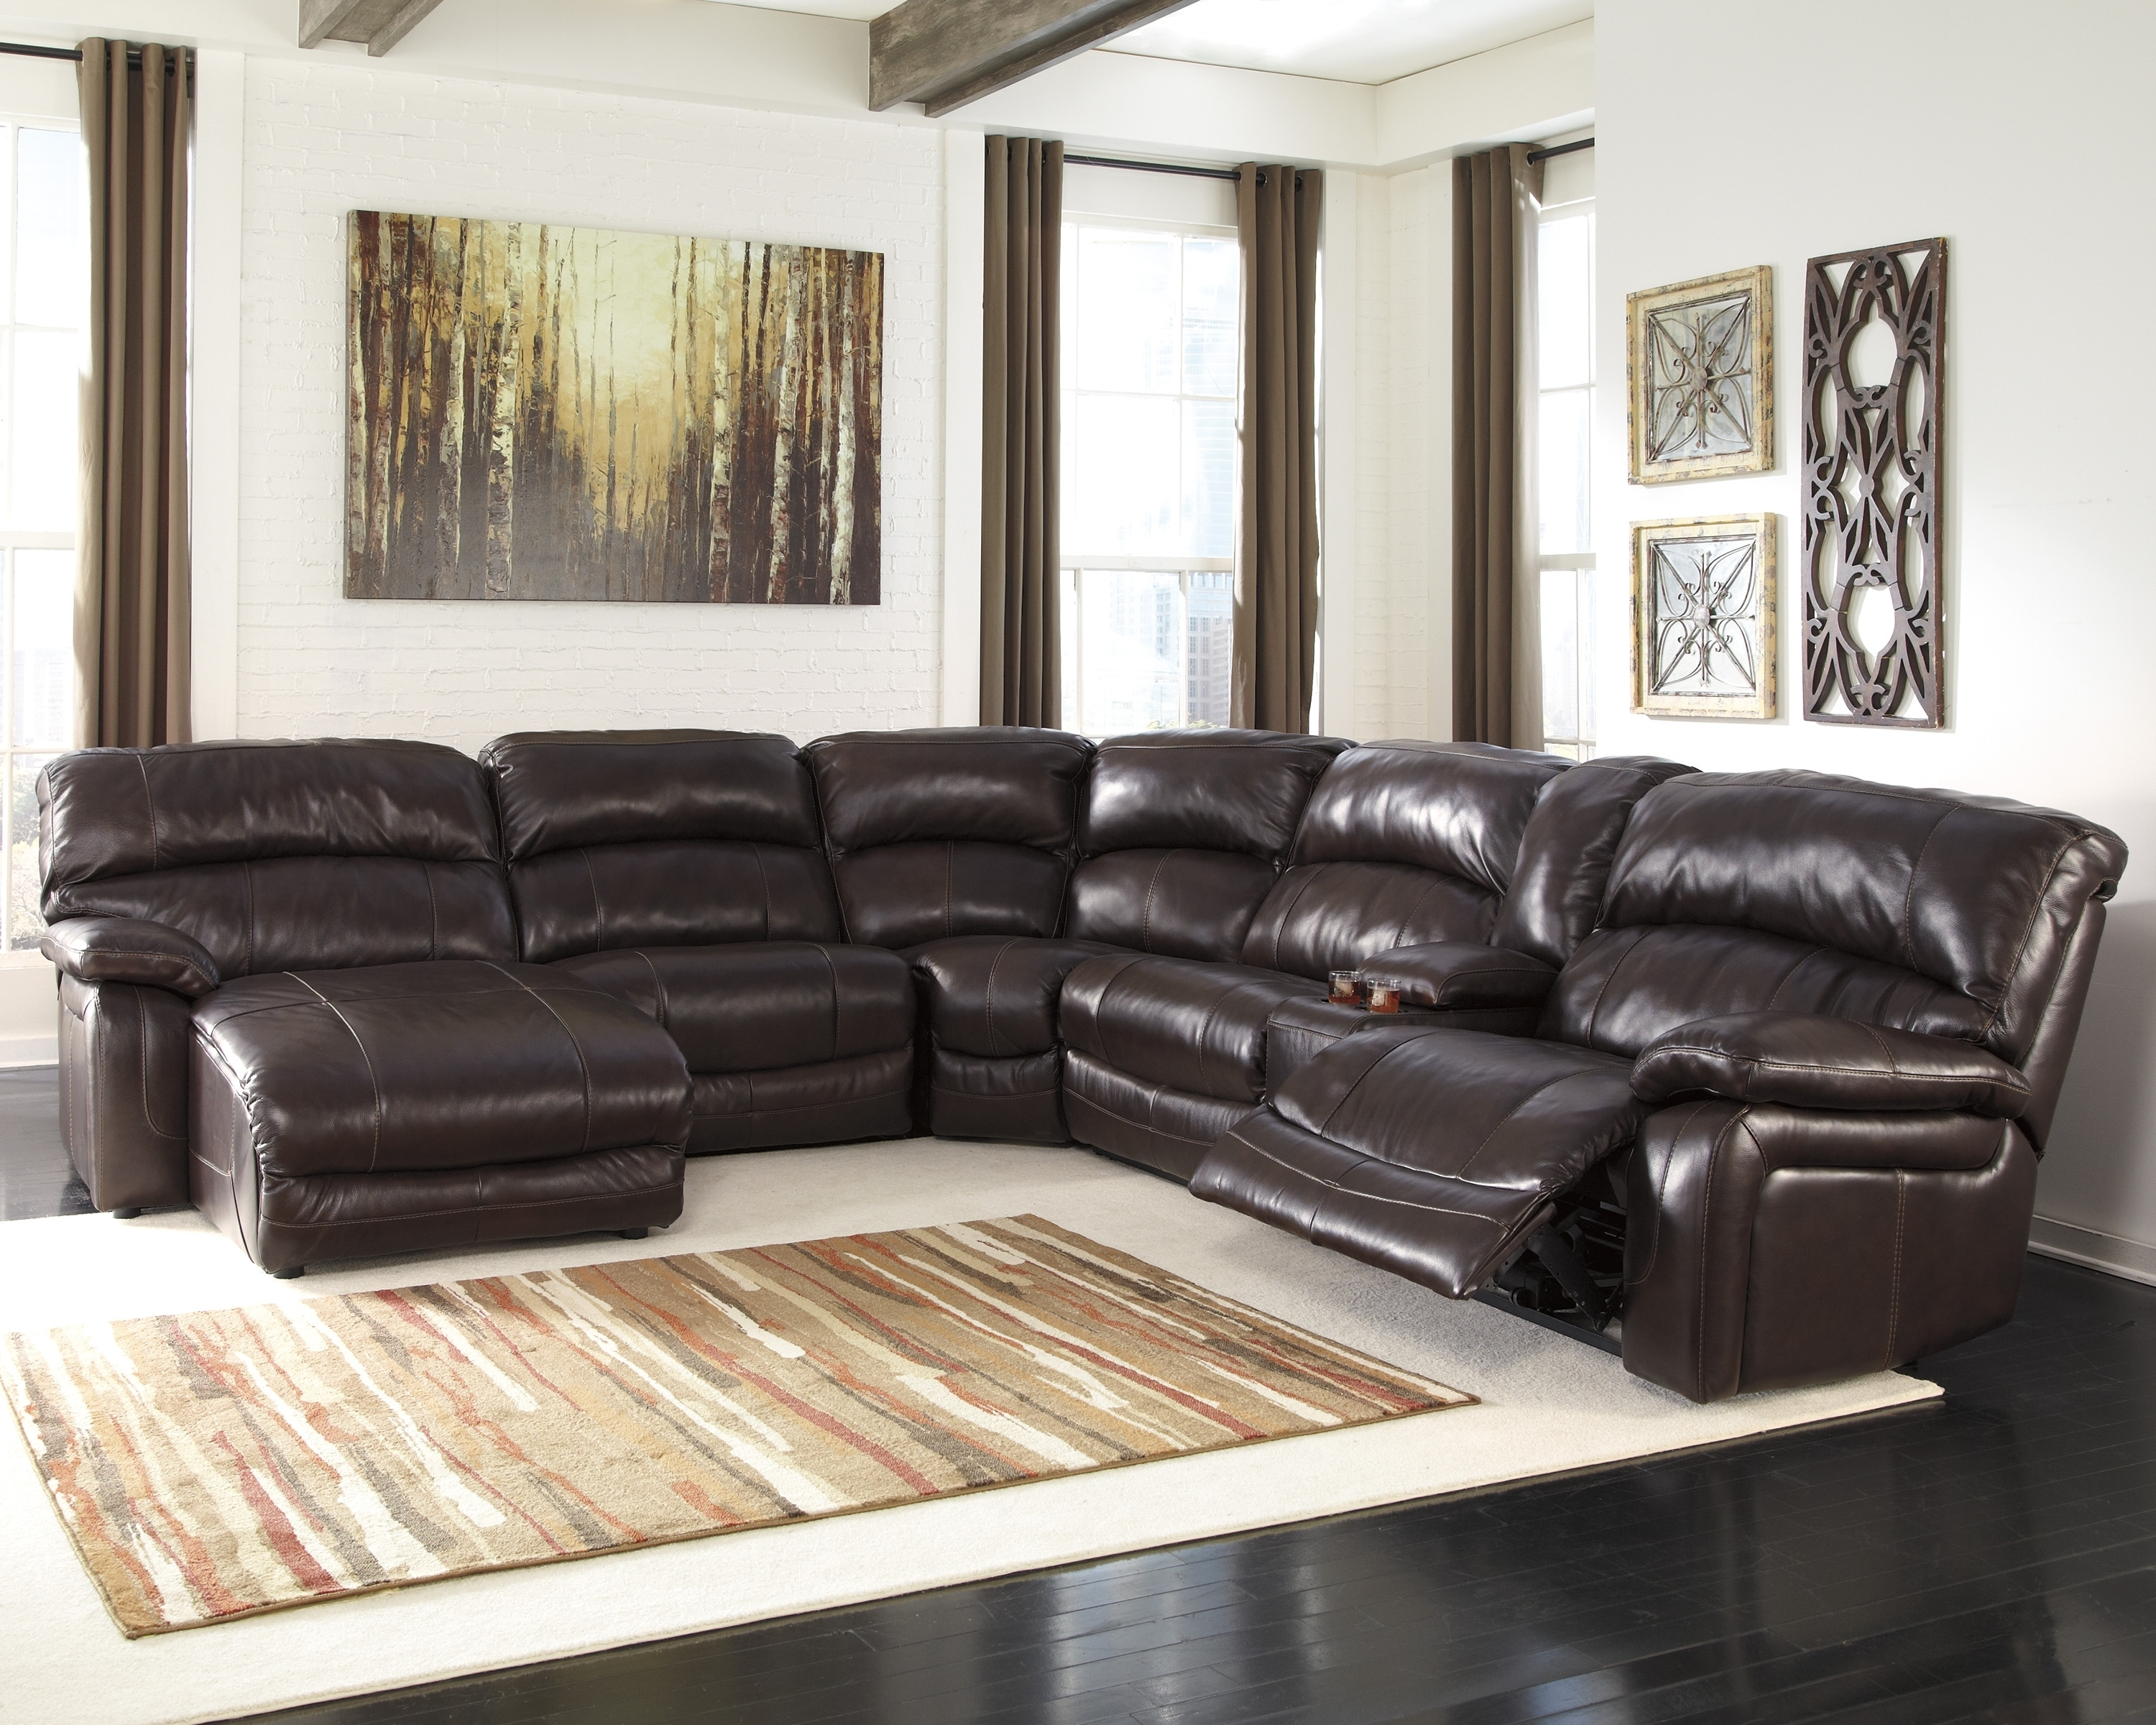 Fashionable Gallery Craftsman Sectional Sofa – Mediasupload Intended For Craftsman Sectional Sofas (View 10 of 15)